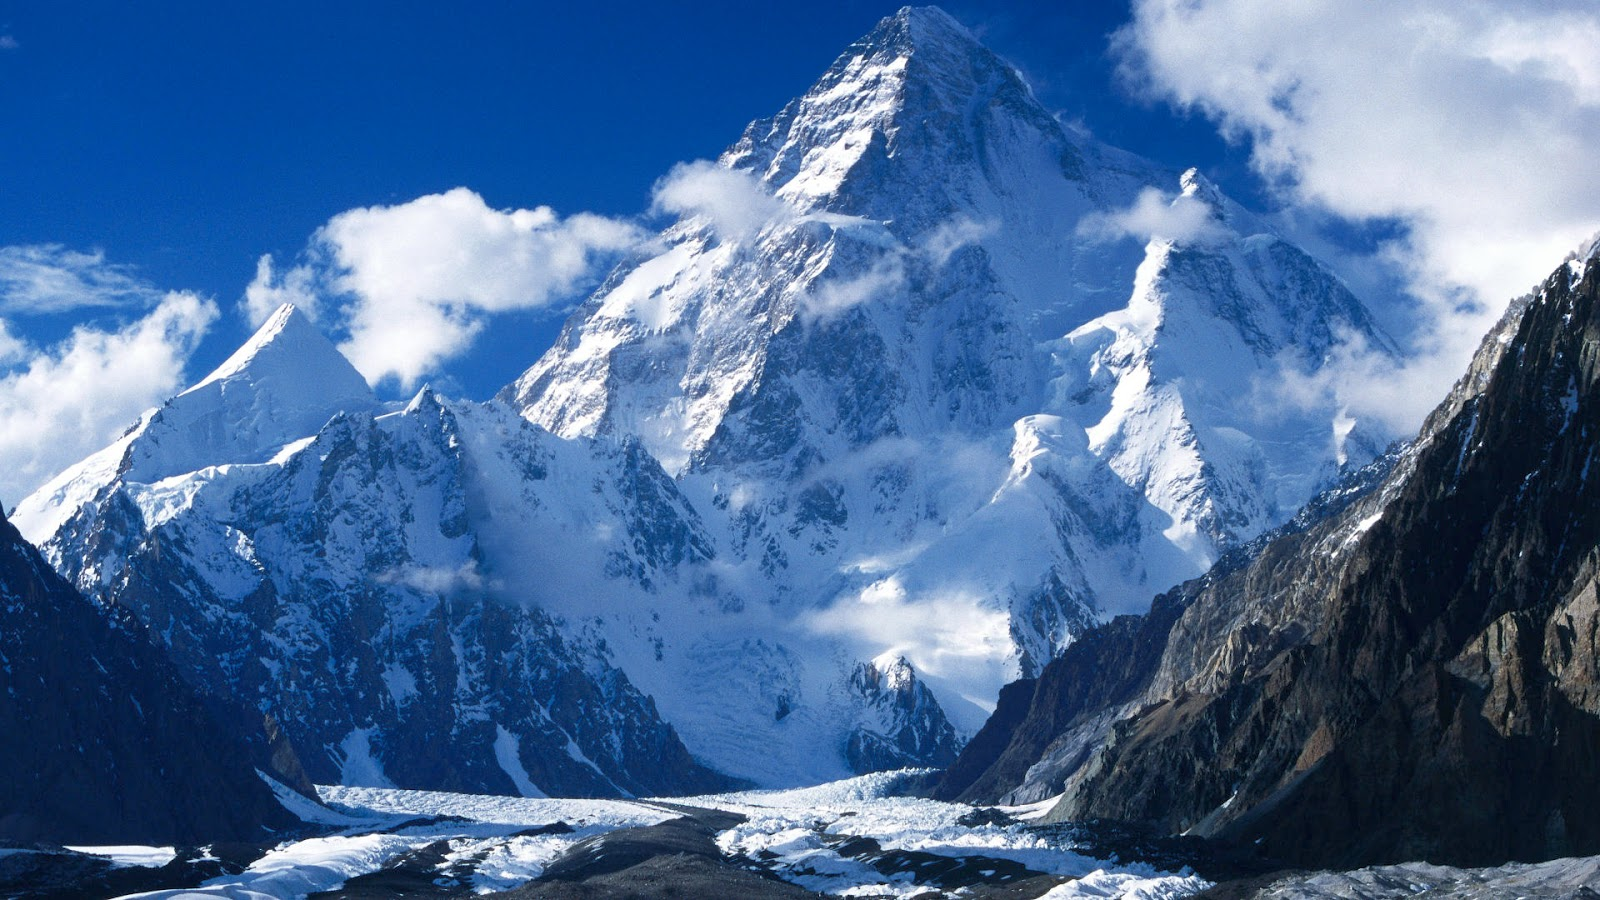 World Beautifull Places: K2 Highest Mountain In The World